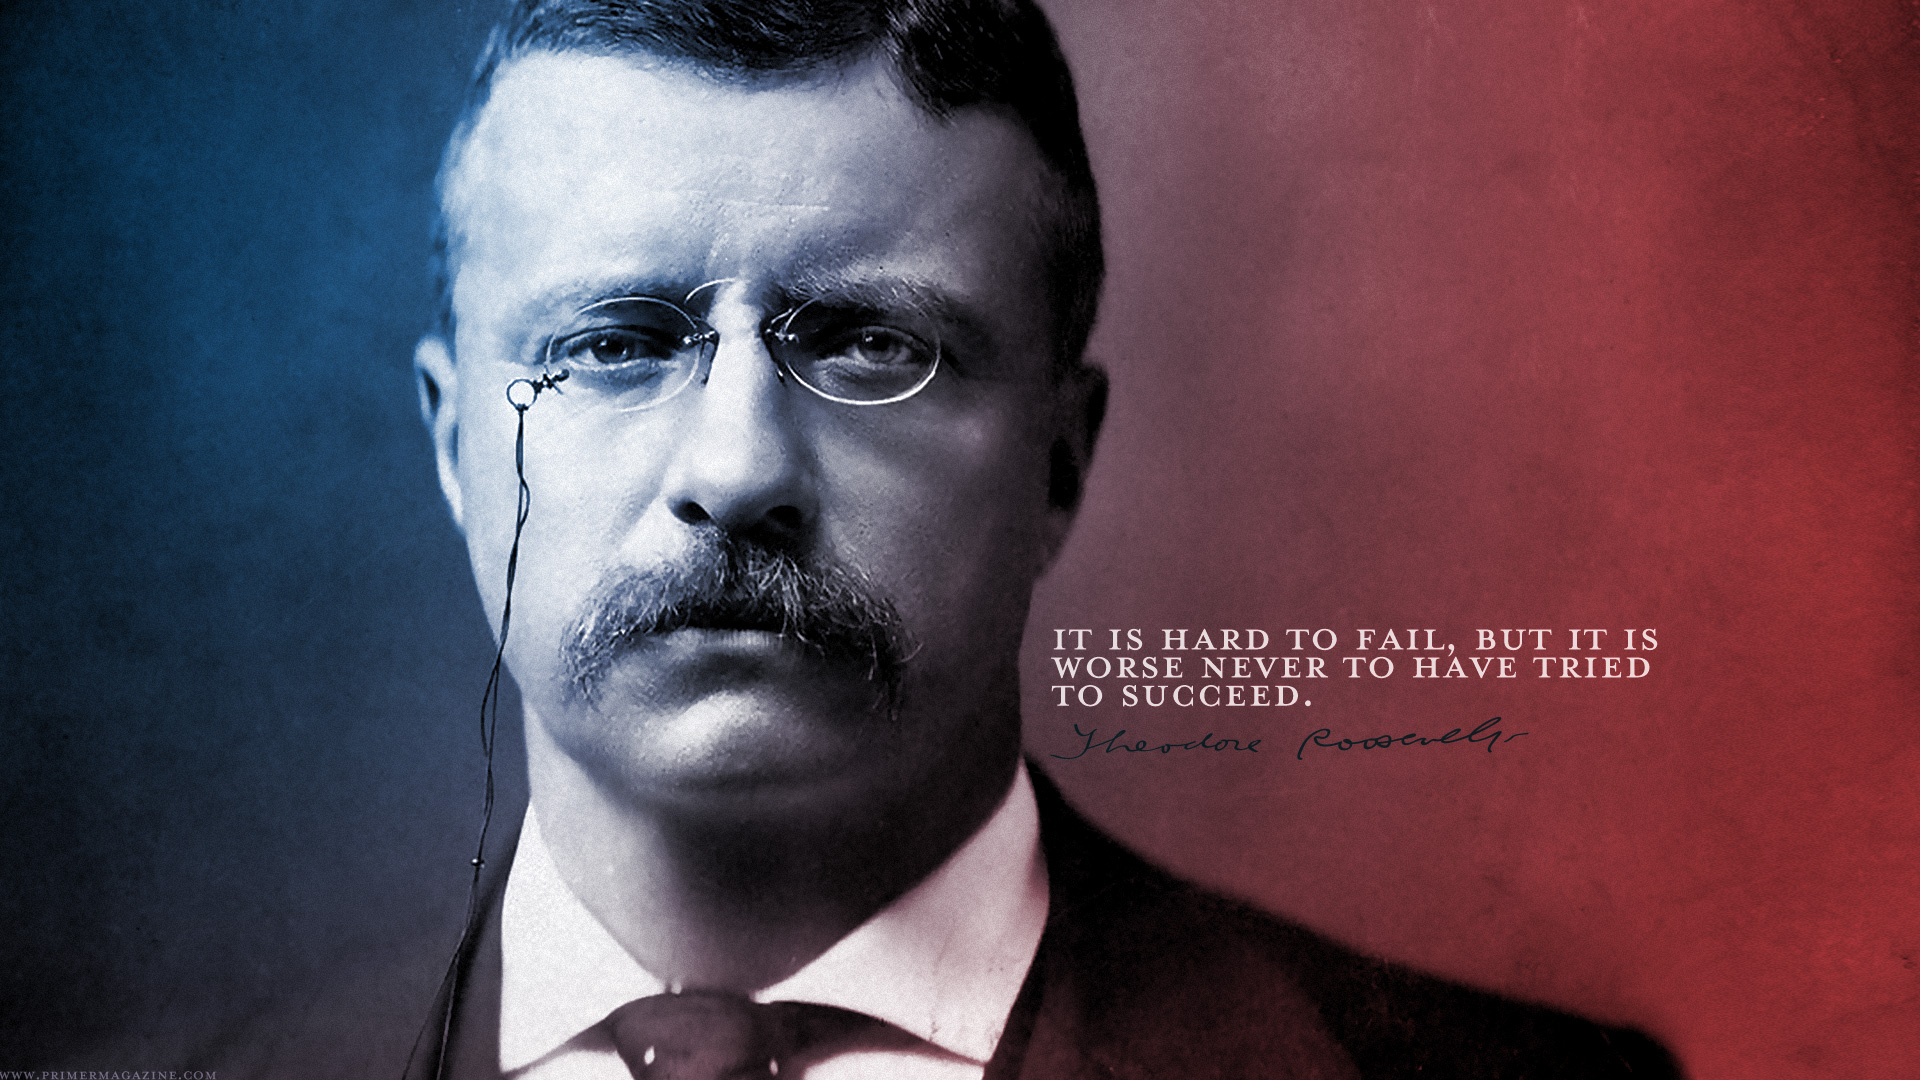 Self Motivation Quotes Wallpaper Wednesday Wallpaper Failure Vs Success By Teddy Roosevelt